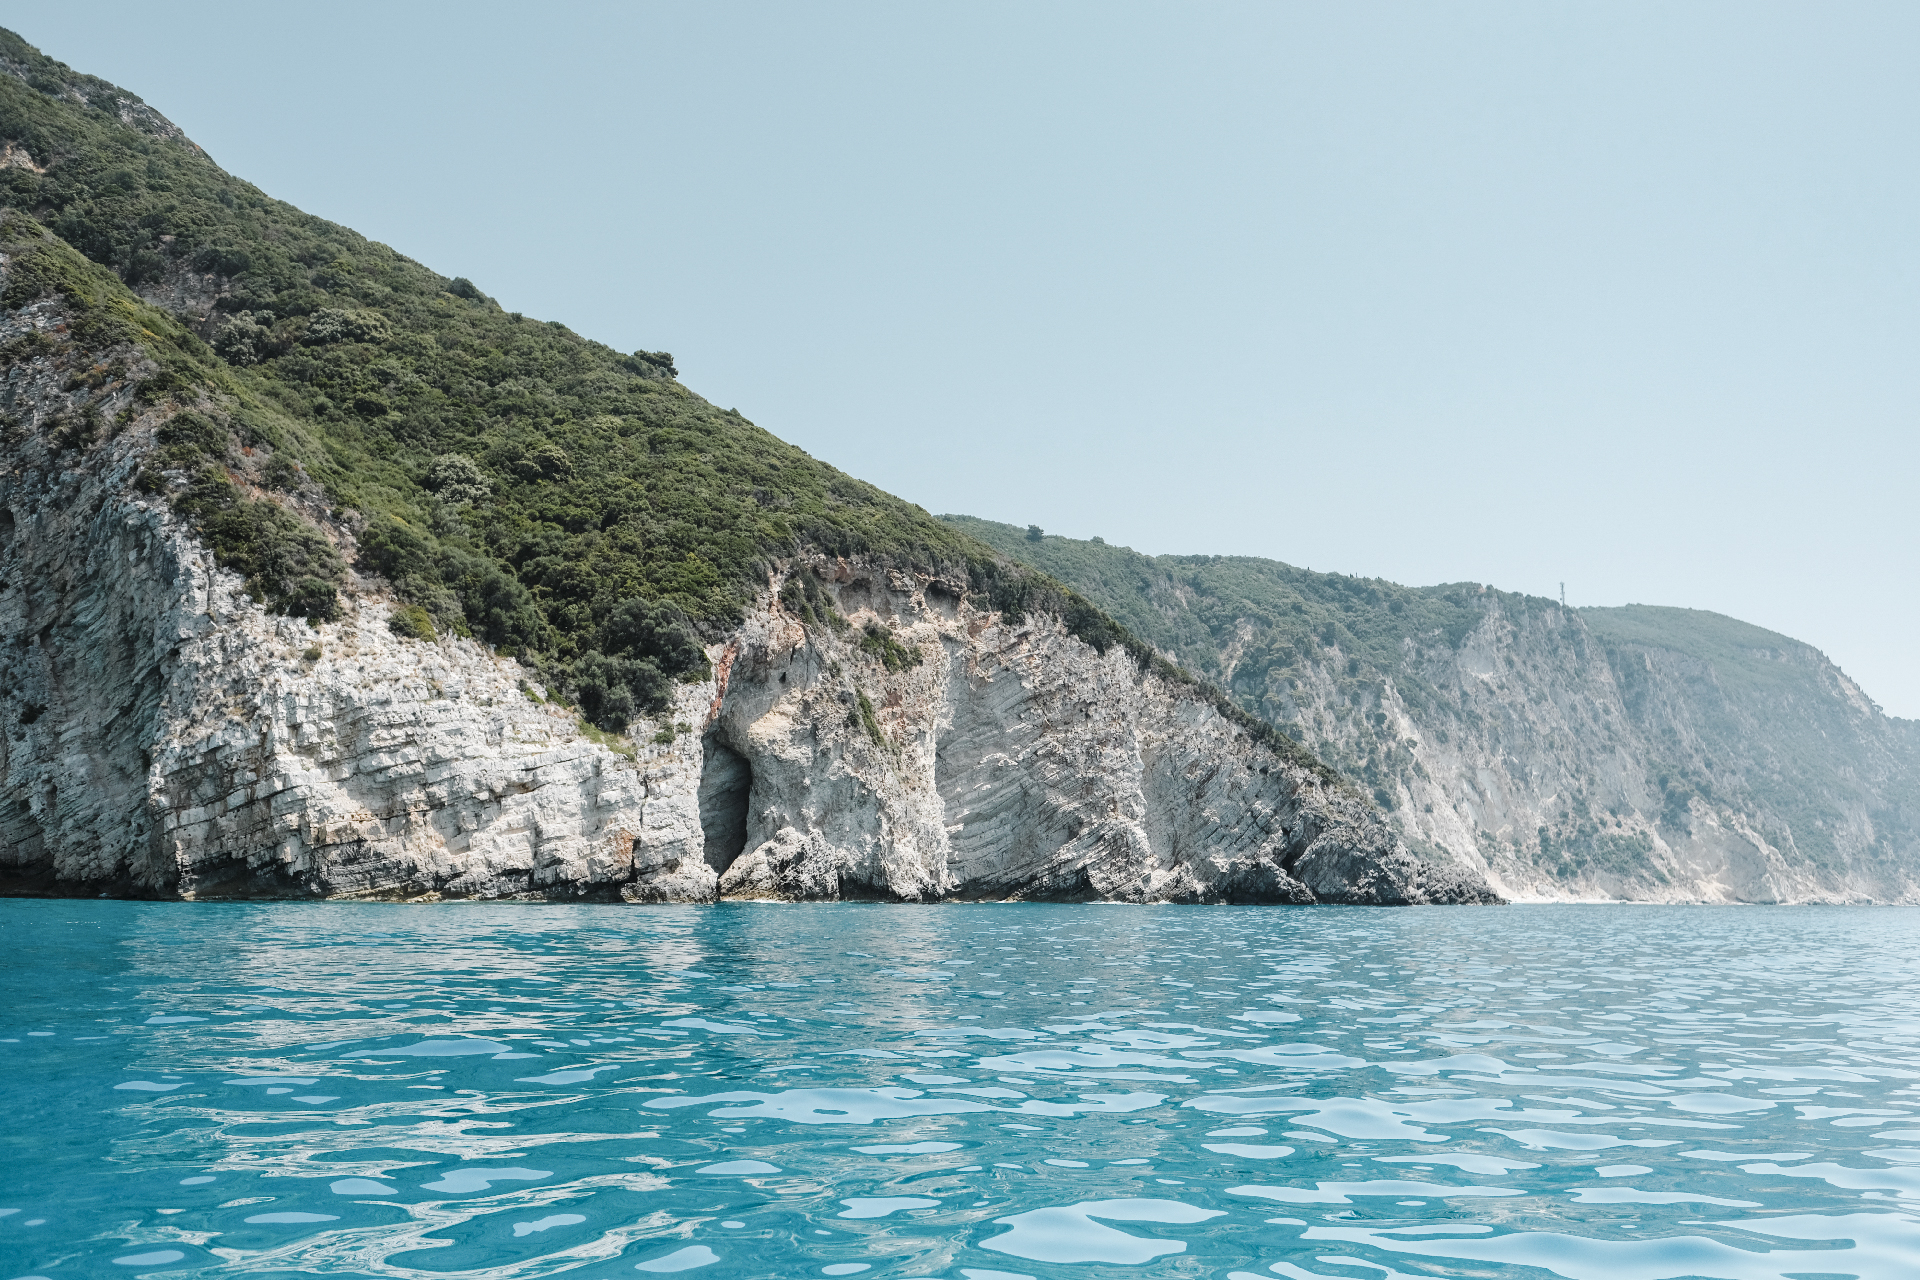 Cliffs of the Adriatic sea seen from a boat, things to do in Corfu